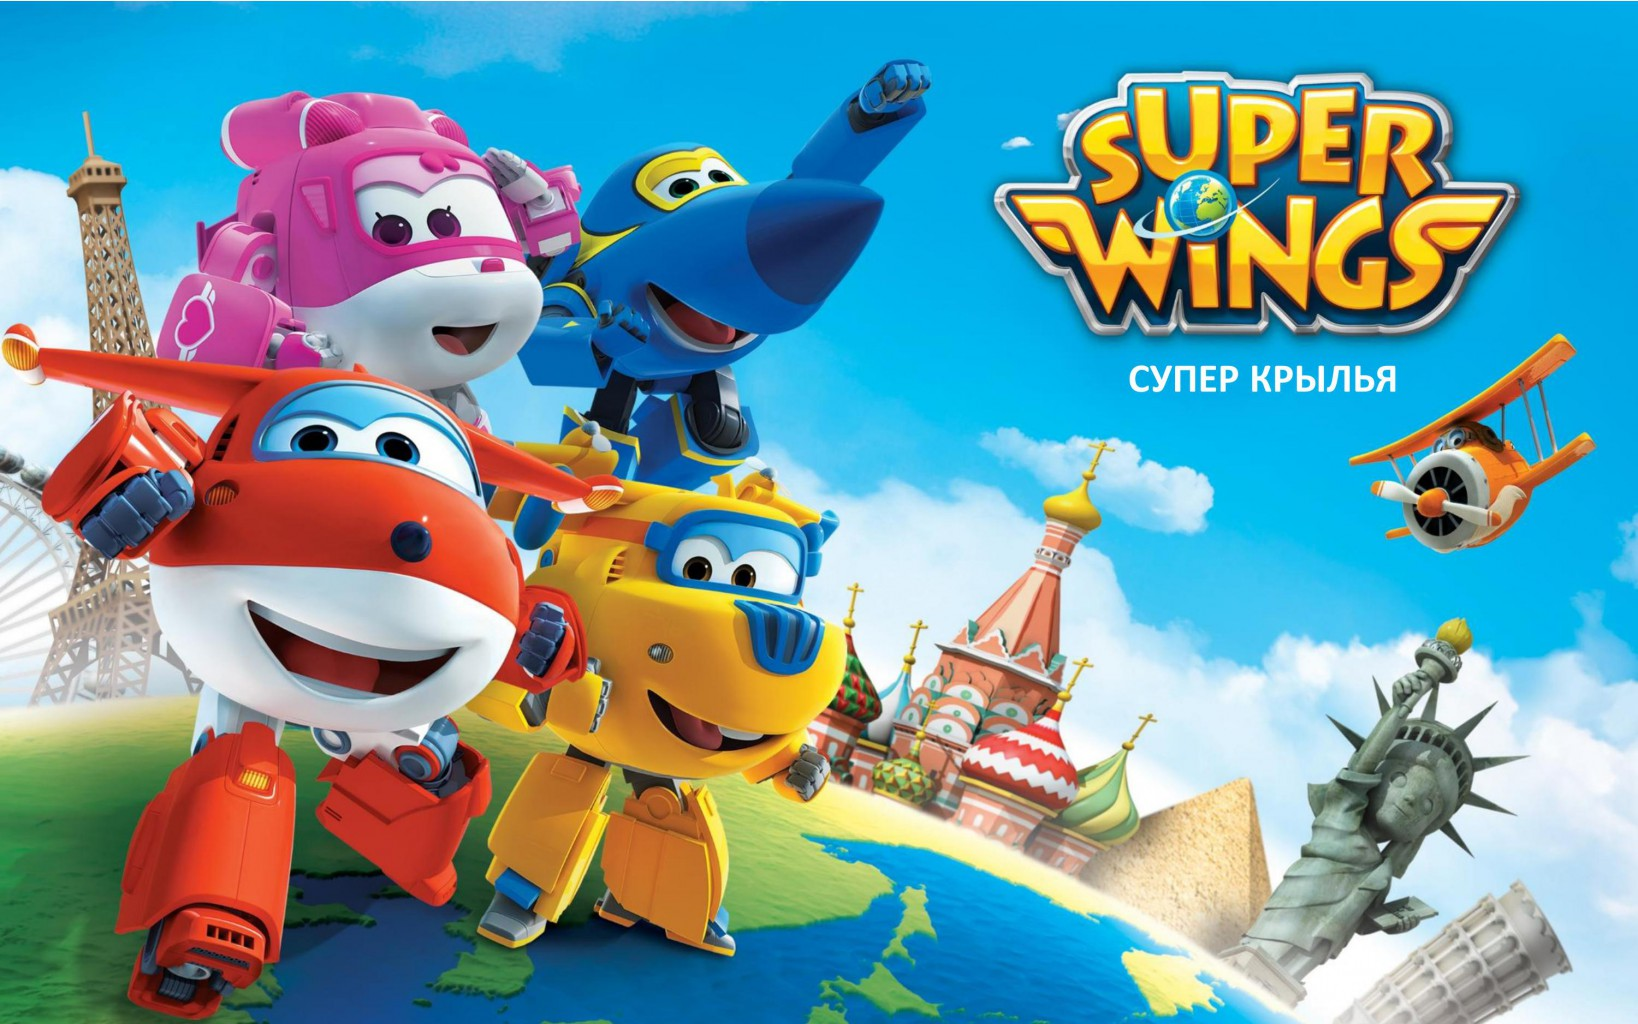 ���� �������. ���������! Super Wings (����� ������) ��������! (��-�� ����� �����) ������������, ������� ������, �������������!